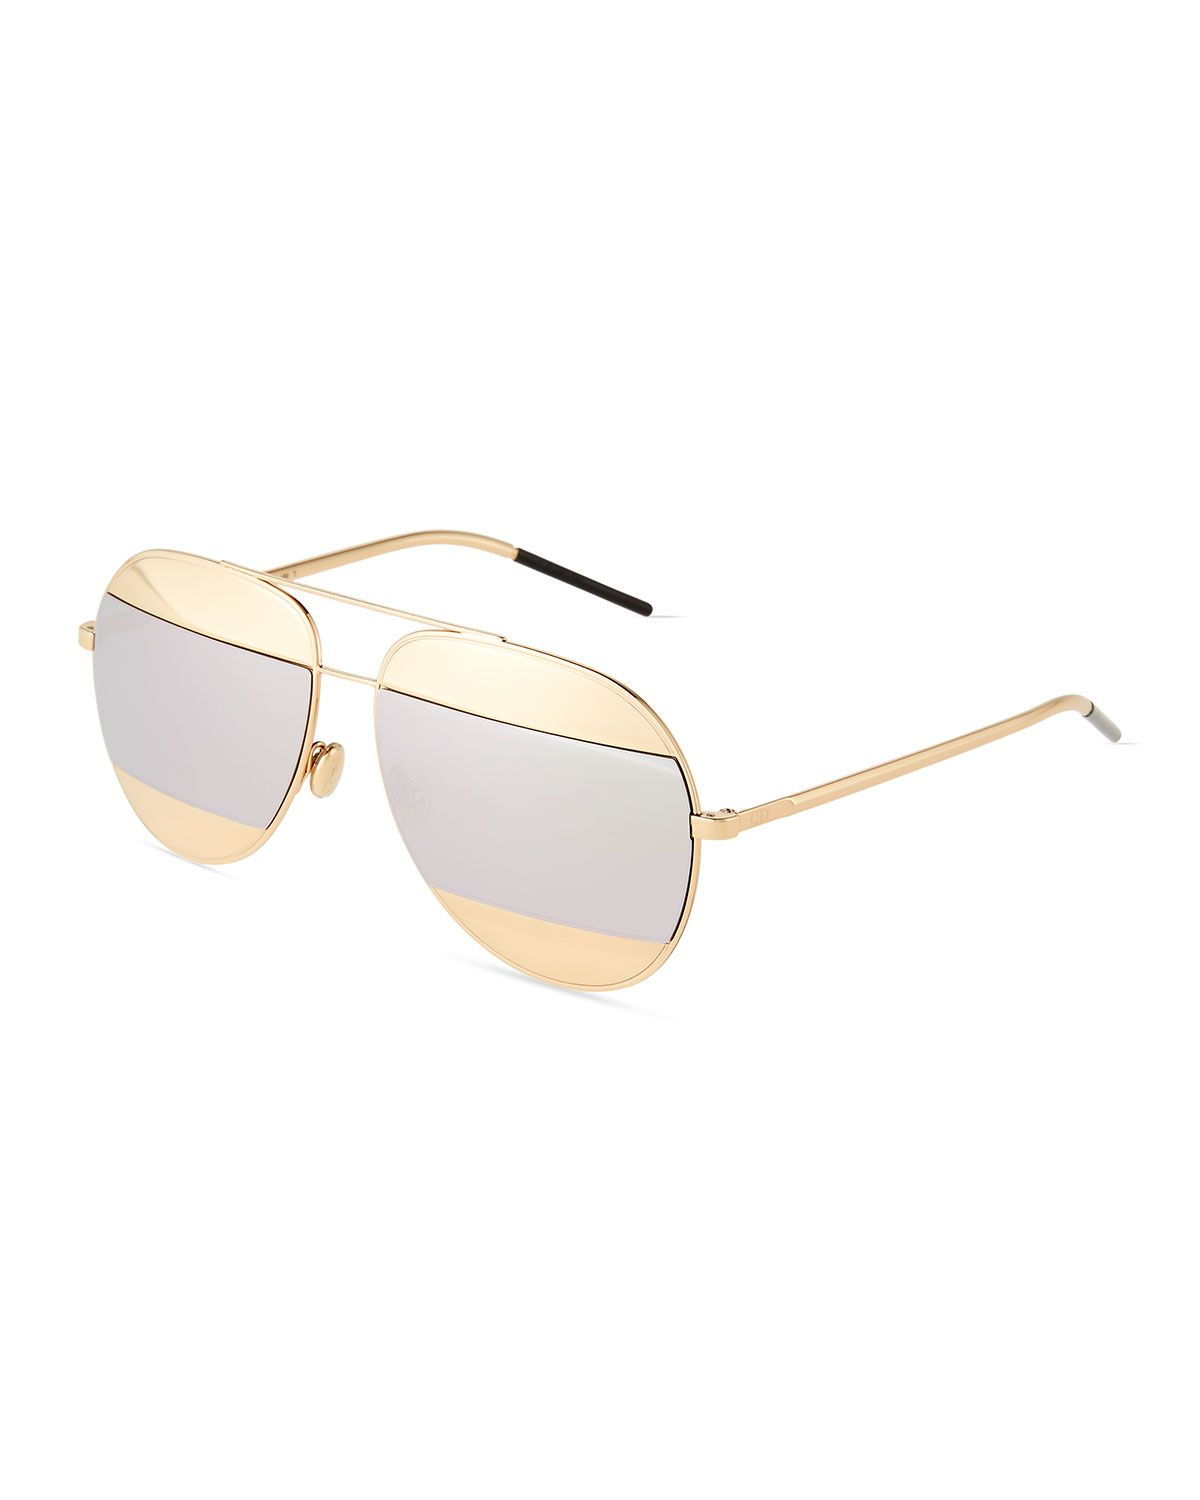 cfb4a5d014 DiorSplit Two-Tone Metallic Aviator Sunglasses